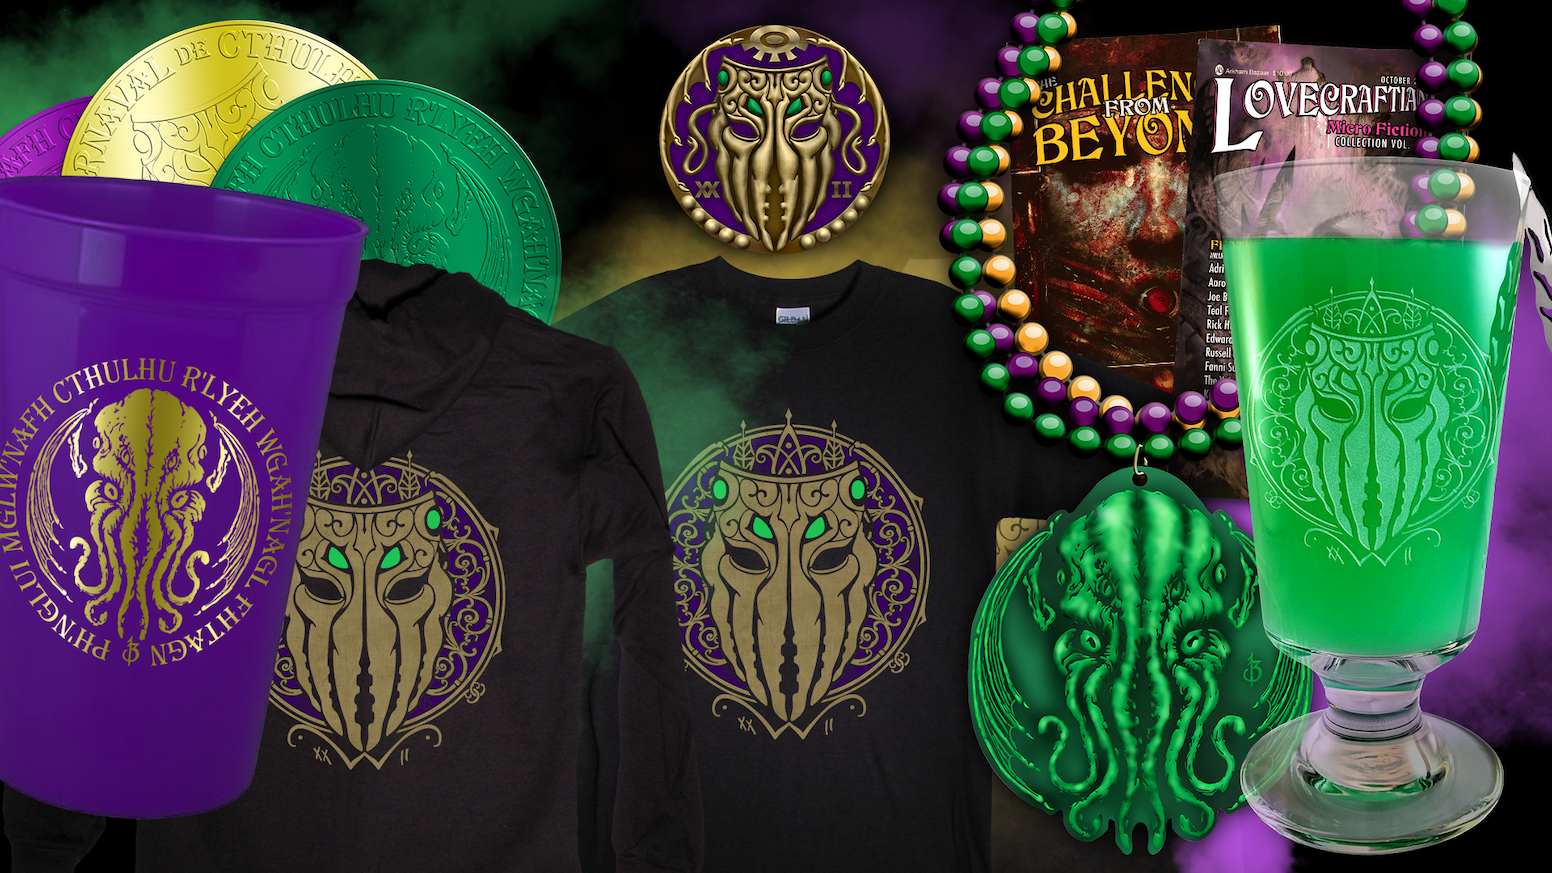 Cthulhu Mardi Gras beads, doubloons, masks, t-shirts, and more, to support the 22nd Annual H. P. Lovecraft Film Festival® Oct 6-8 2017.